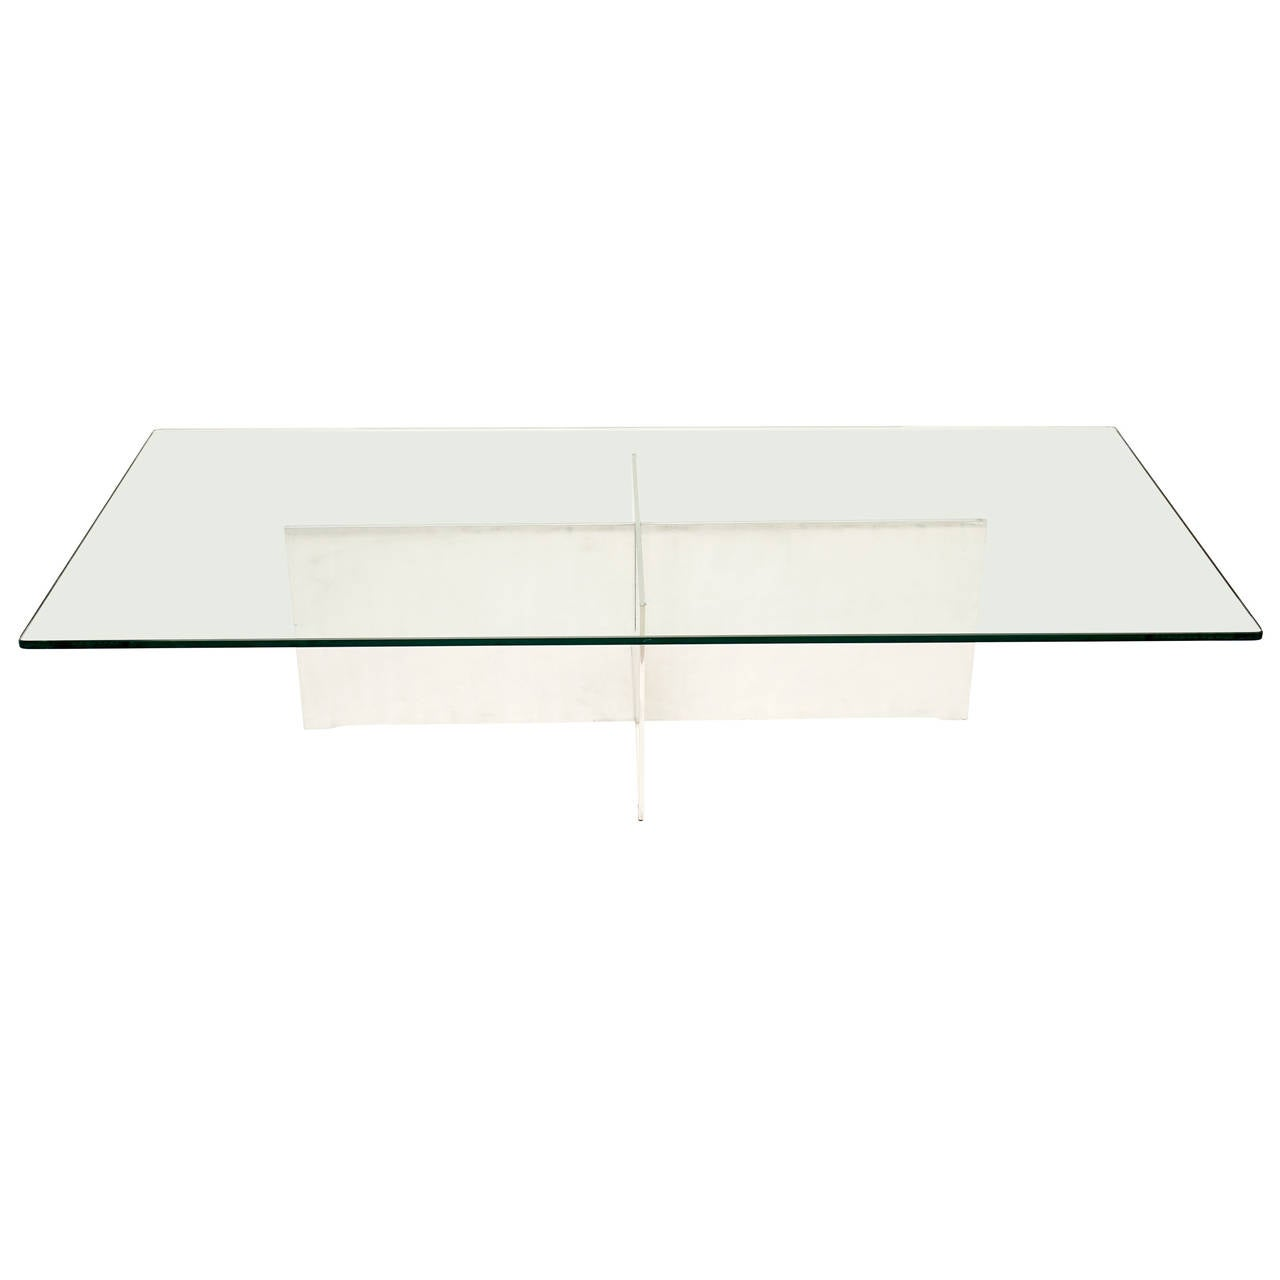 Aluminum and Glass Rectangular Cocktail Table, Paul Mayen, Habitat, 1970s